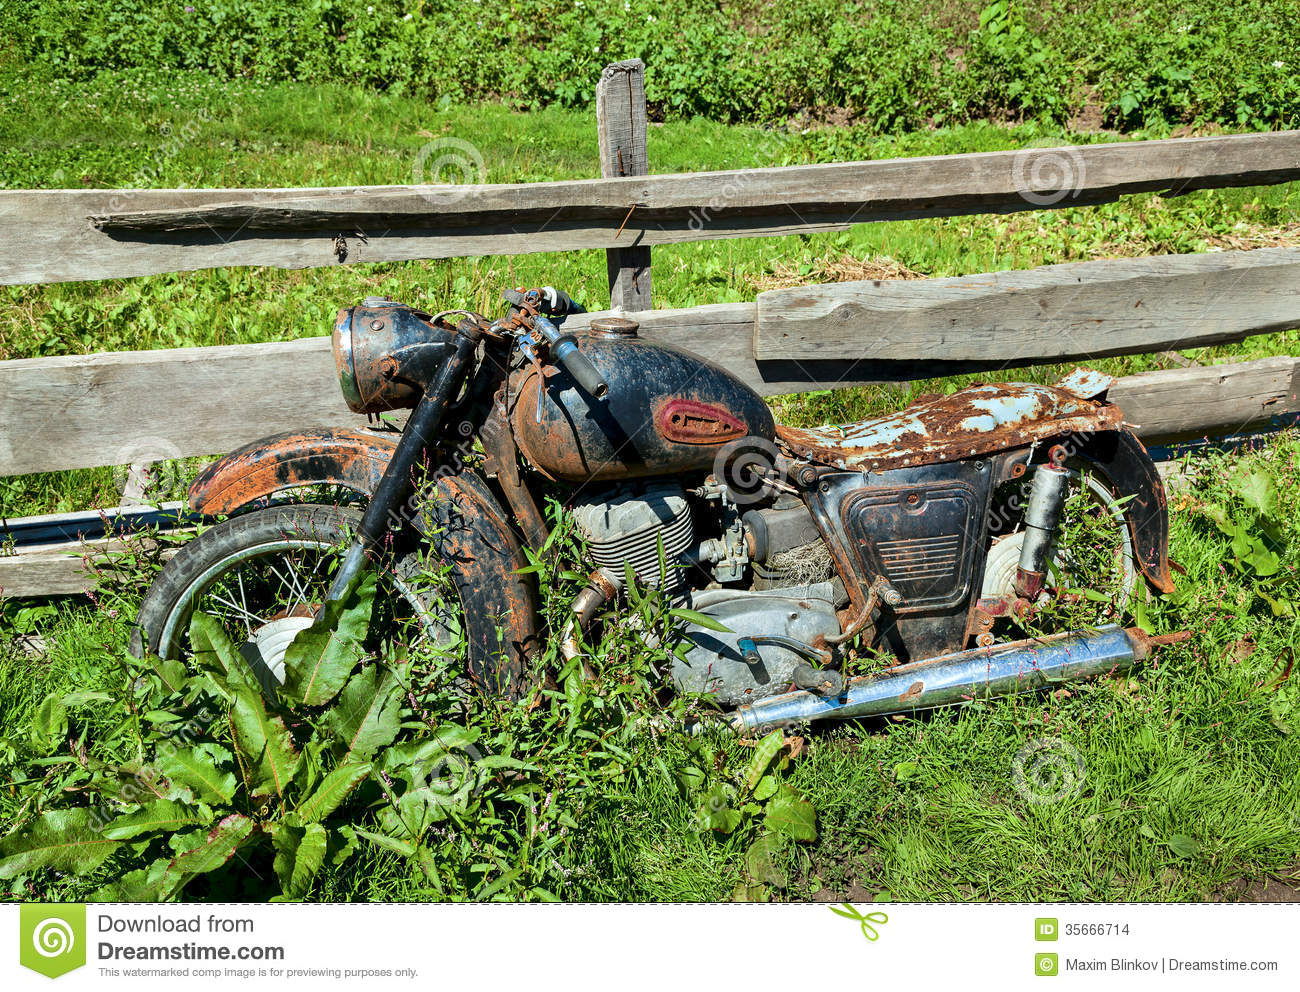 ... motorcycle IZH-56 production 1956 year, found in village on august 18